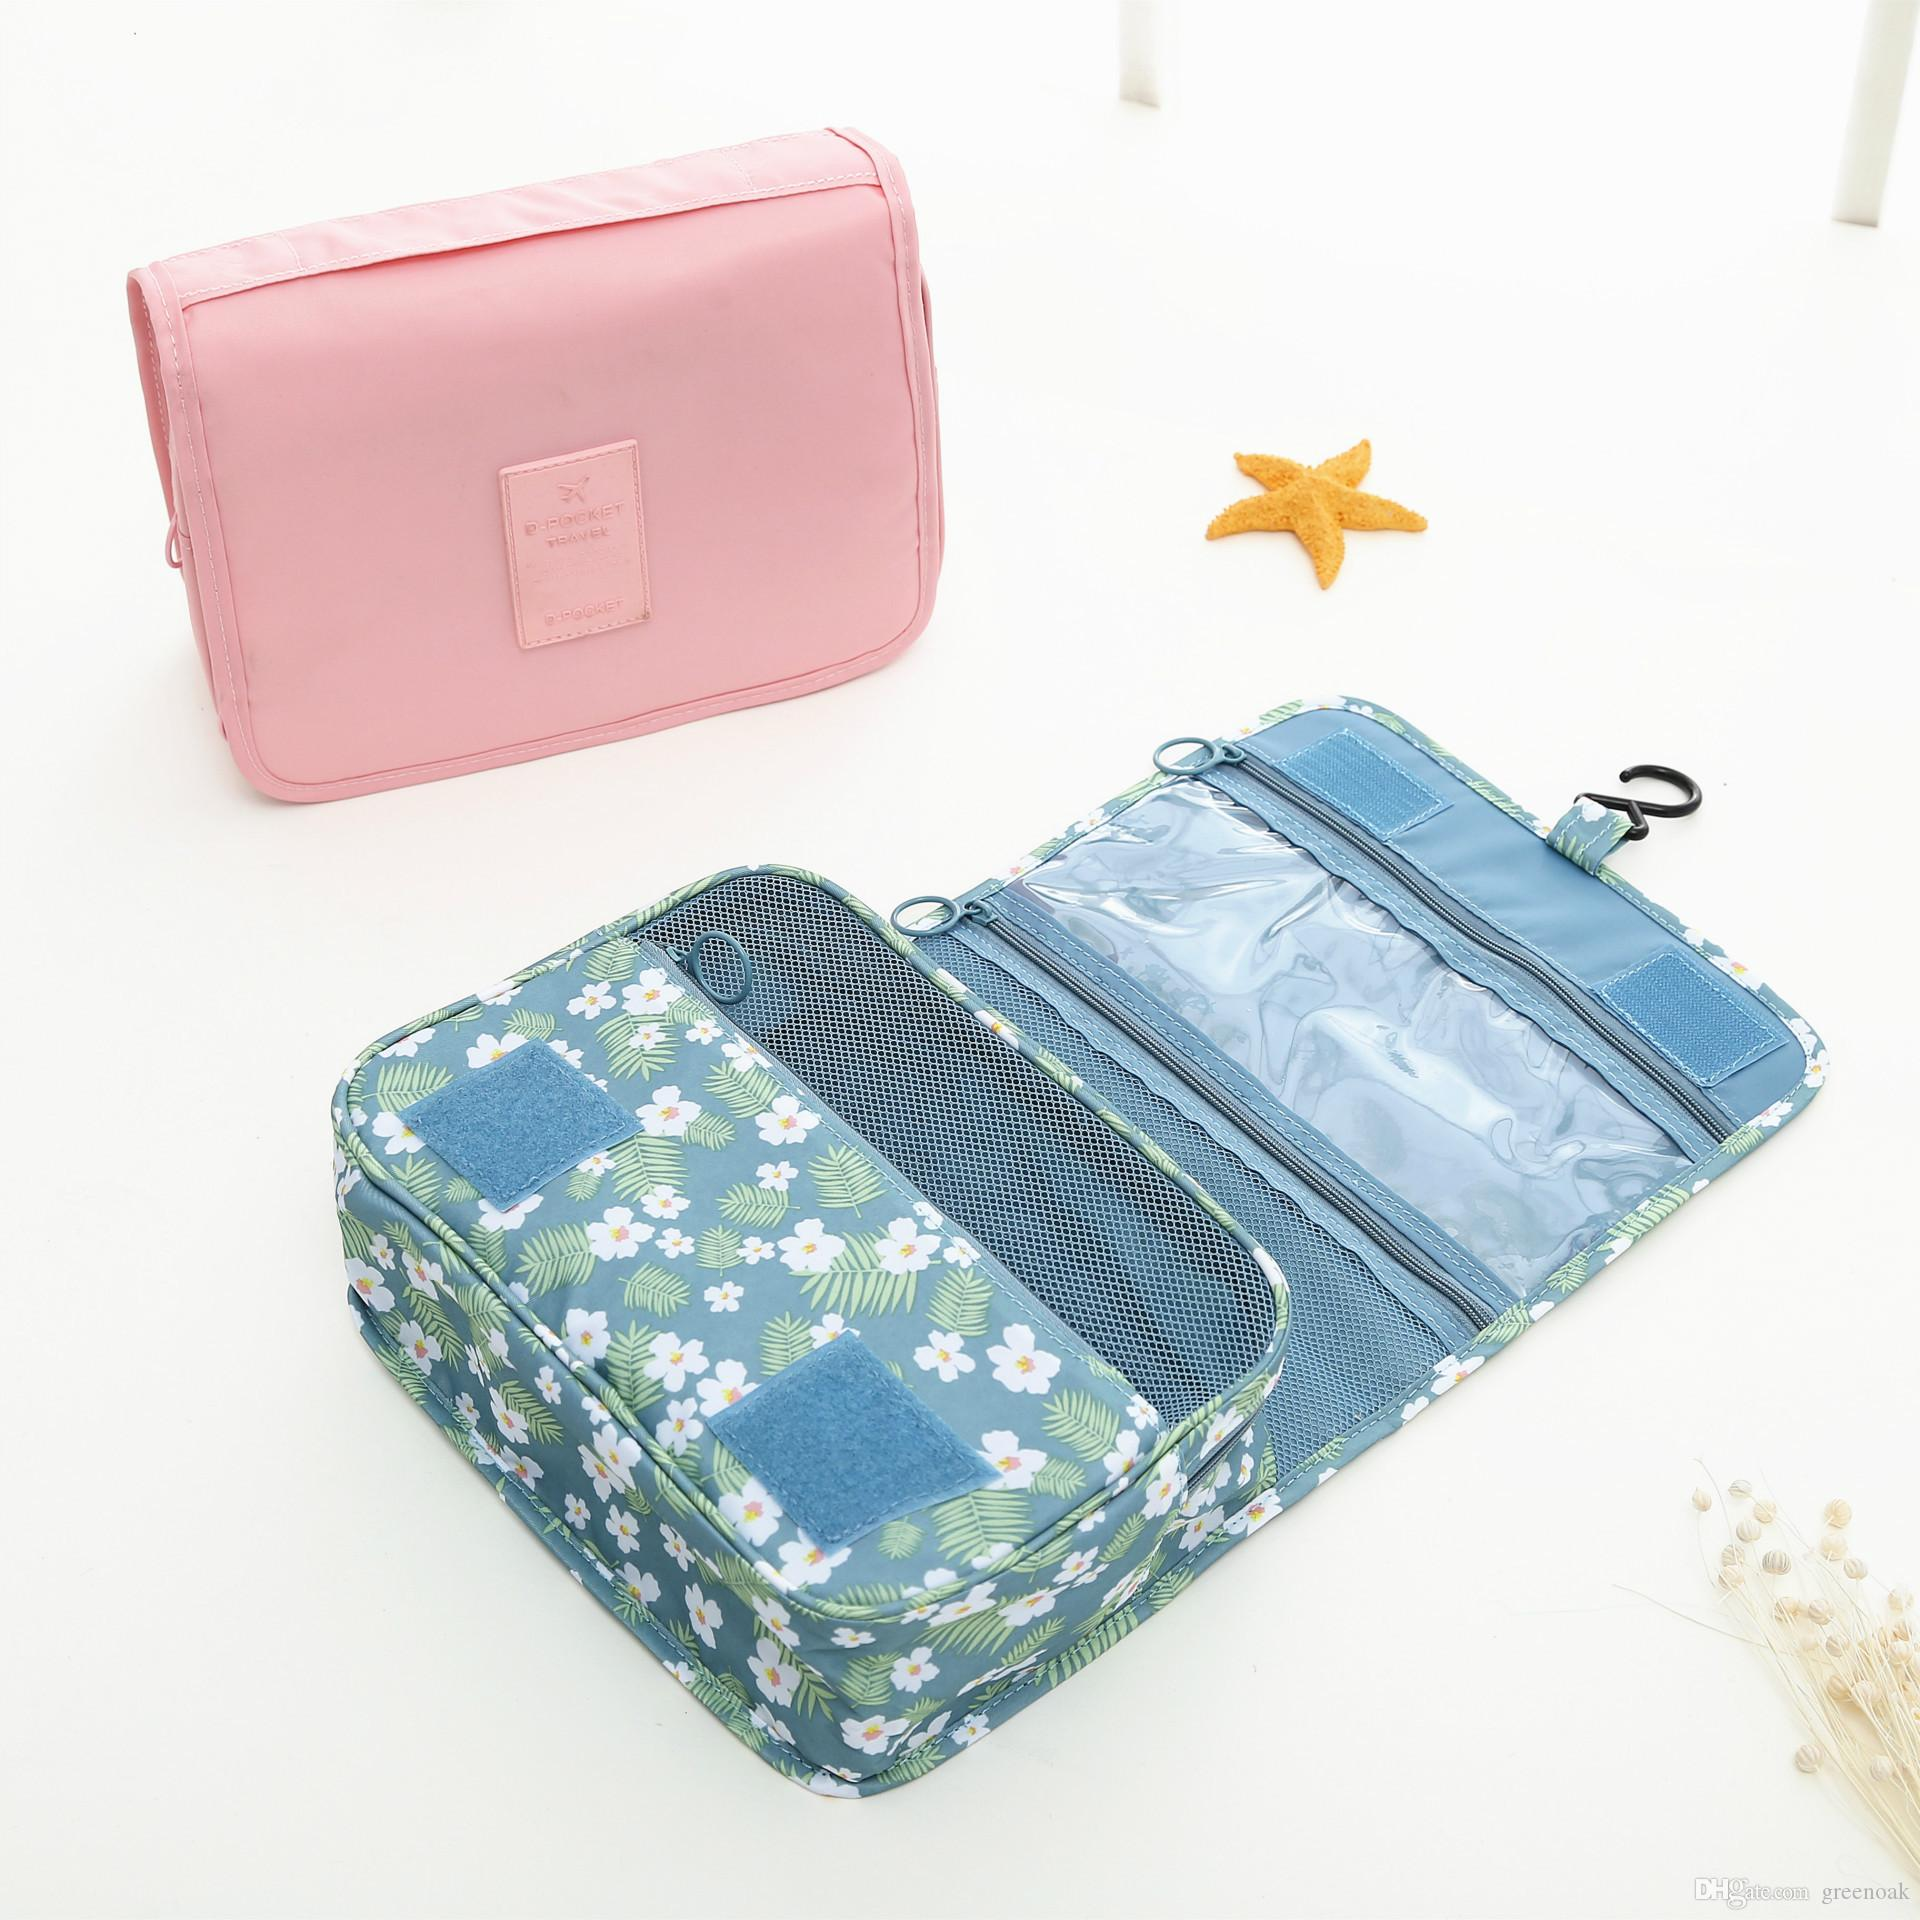 Fashion Hanging Toiletry Bag Large Capacity Portable Cosmetic Organizer  Make Up Storage Bags With Hook Universal Outdoor Travel Kits UK 2019 From  Greenoak 815aa5326d434